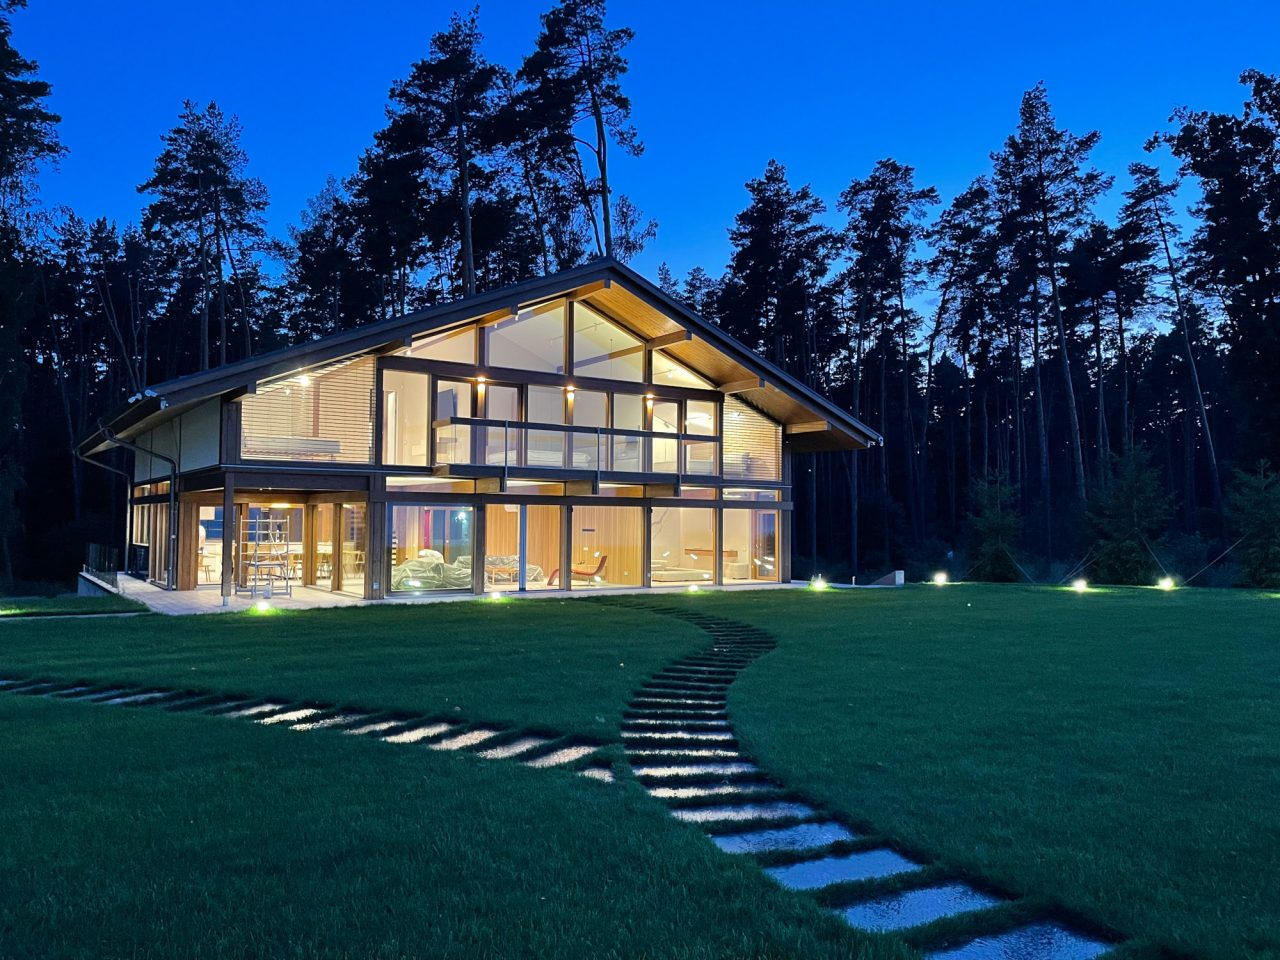 Hlass_house_KAGER - Hurii_27